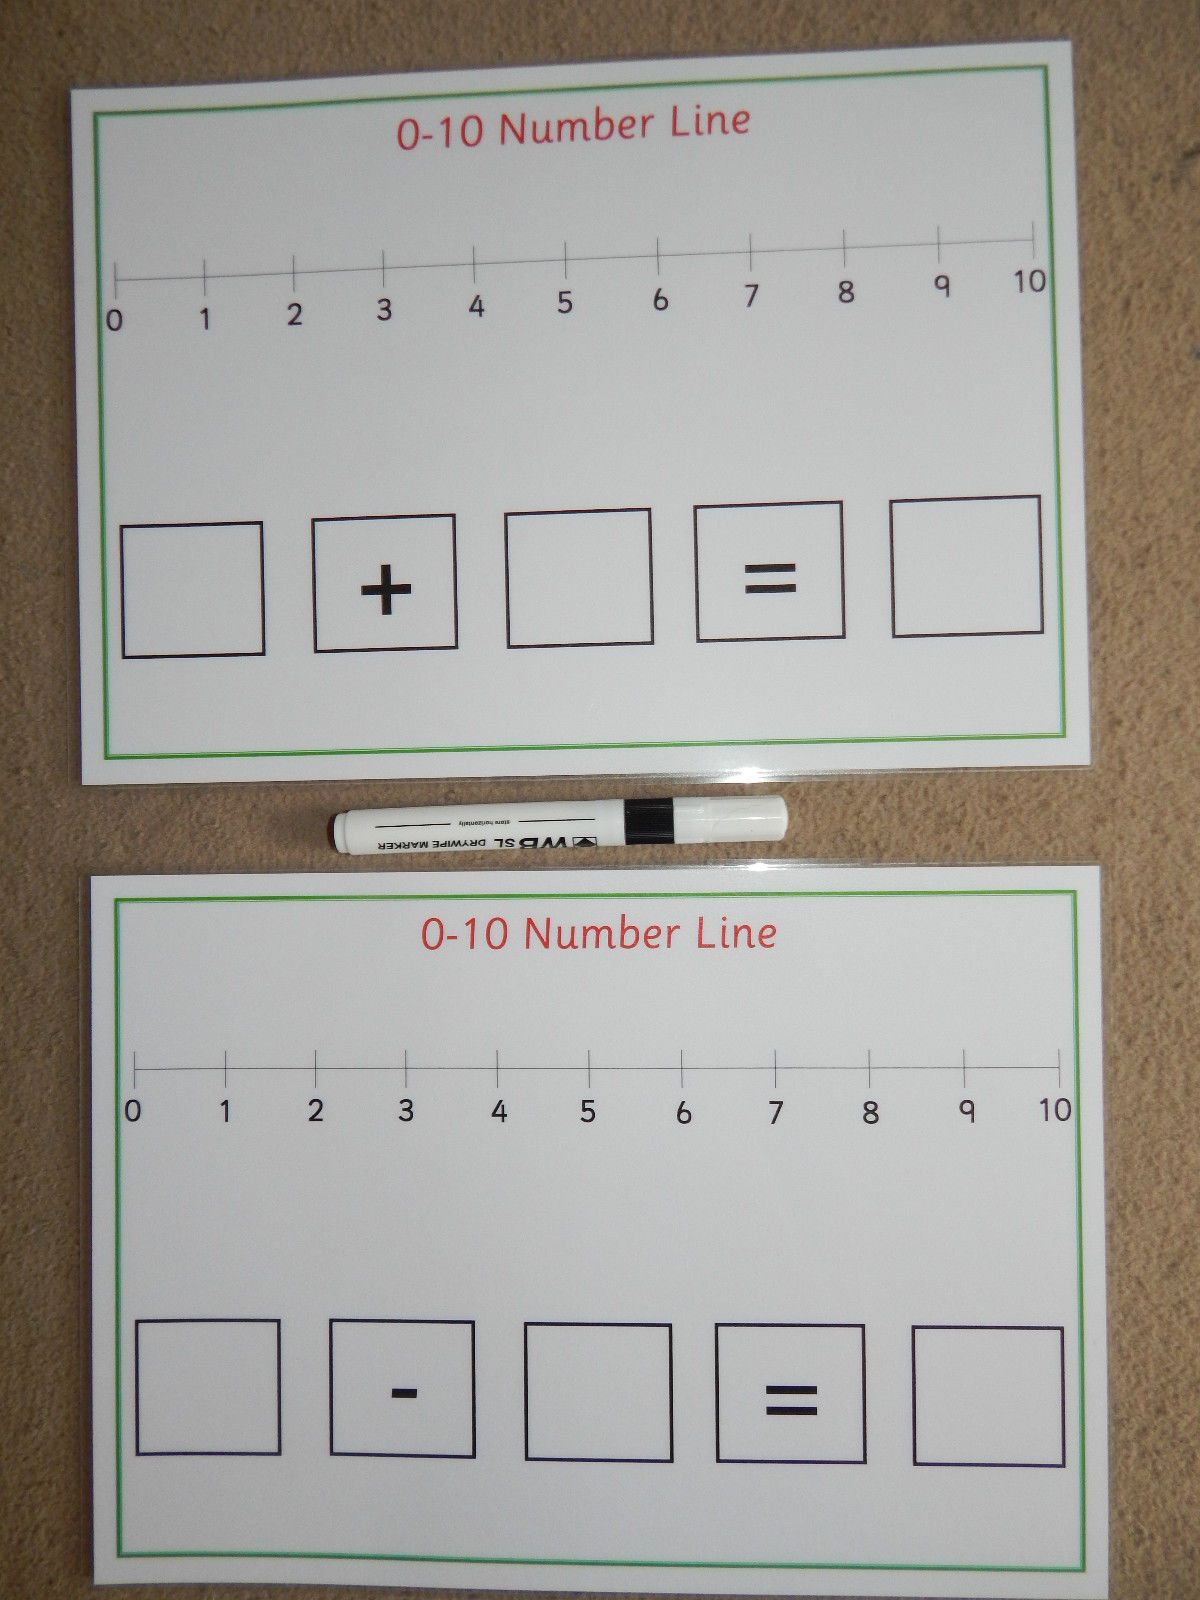 0 10 Addition Subtraction Number Lines Numeracy Teaching Aid Eyfs Ks1 Sen 3 25 0 10 Number Lines Inc Line Math Number Line Kindergarten Math Activities